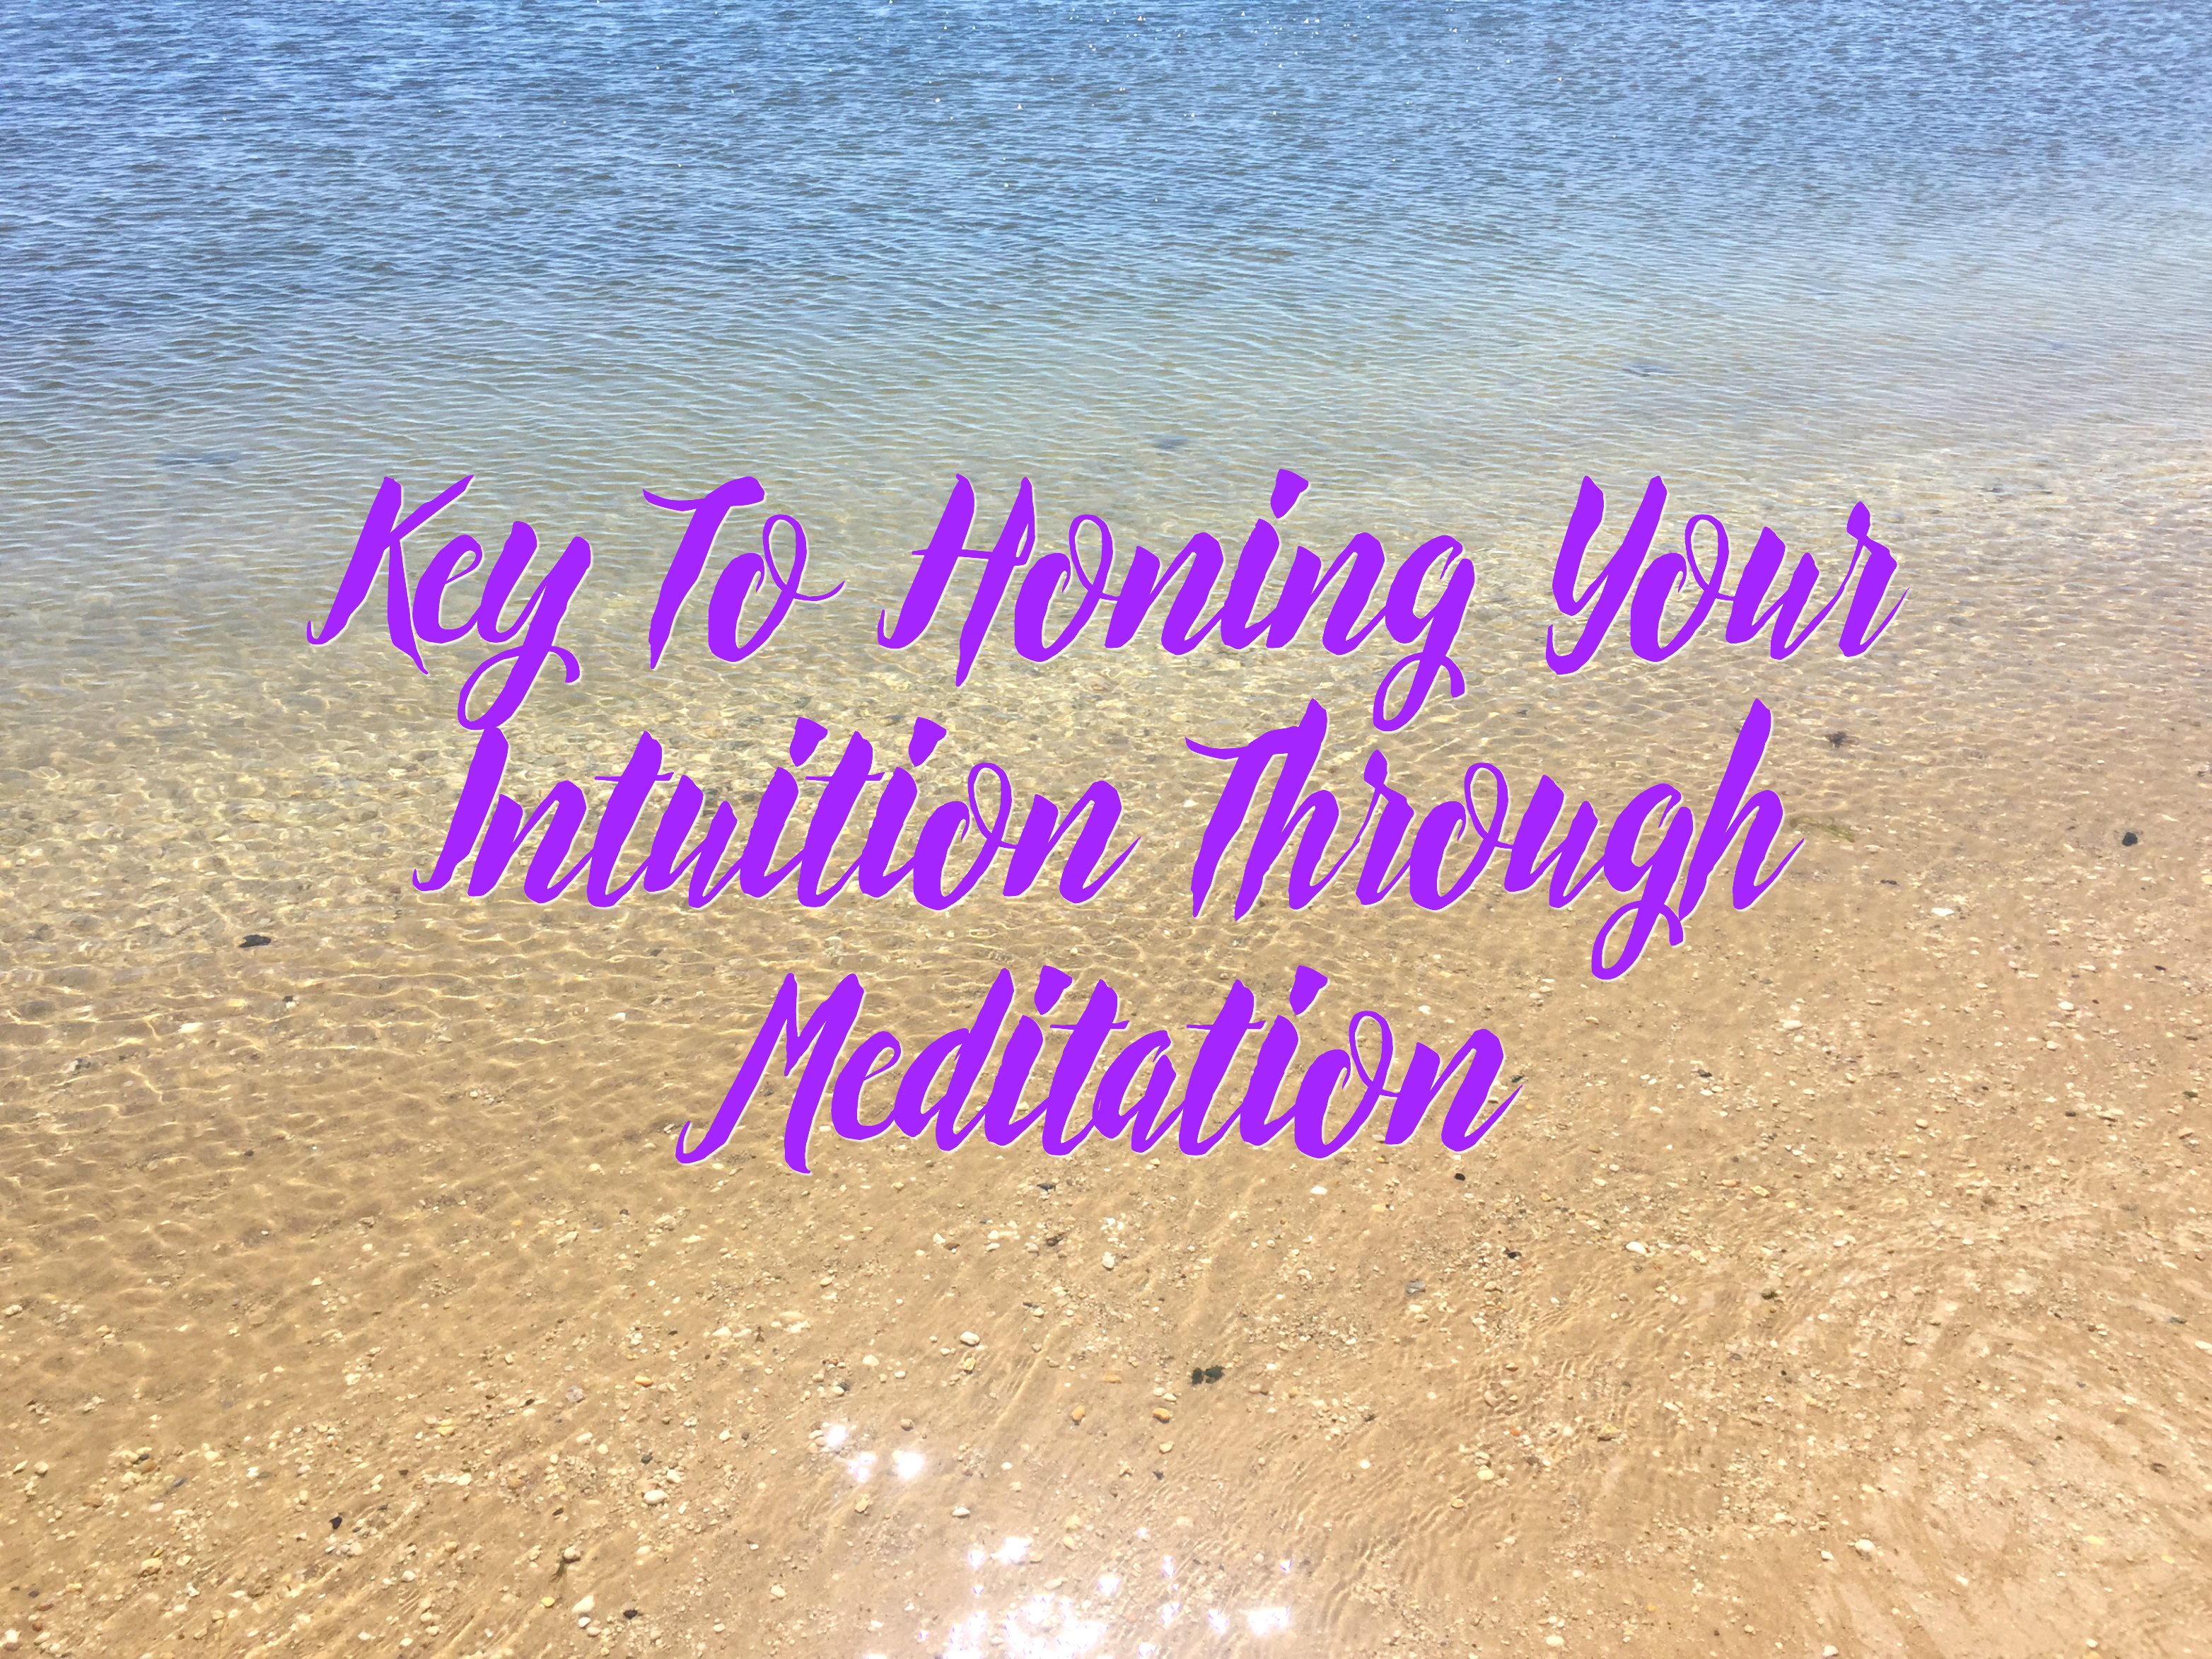 Key to Honing Your Intuition With Meditation